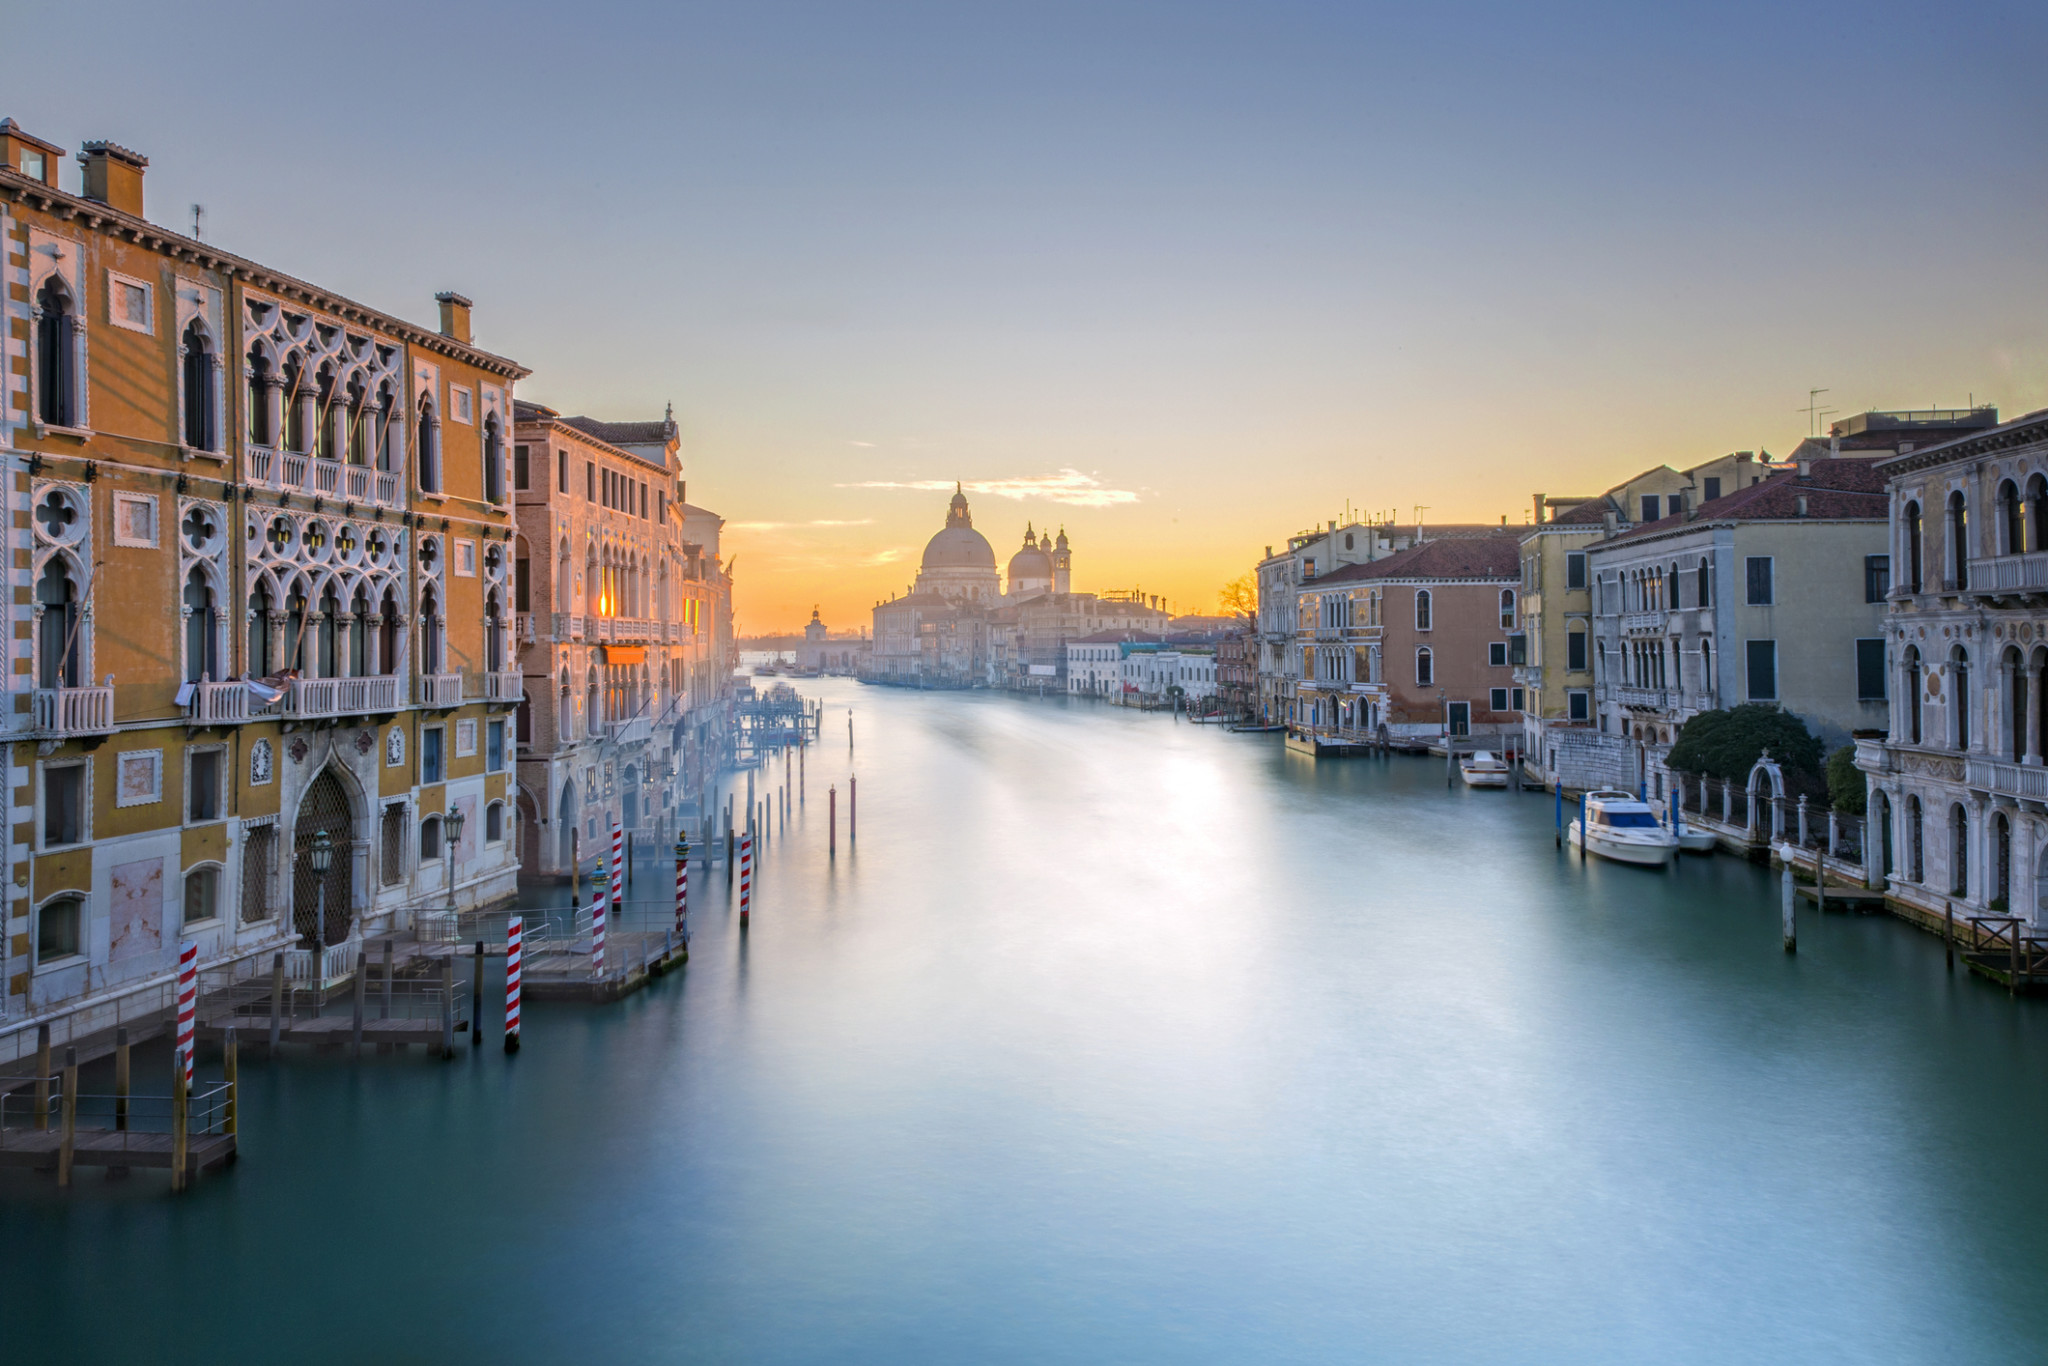 View-from-Accademia-Bridge-on-Grand-Canal-in-Venice-504879858_2123x1416